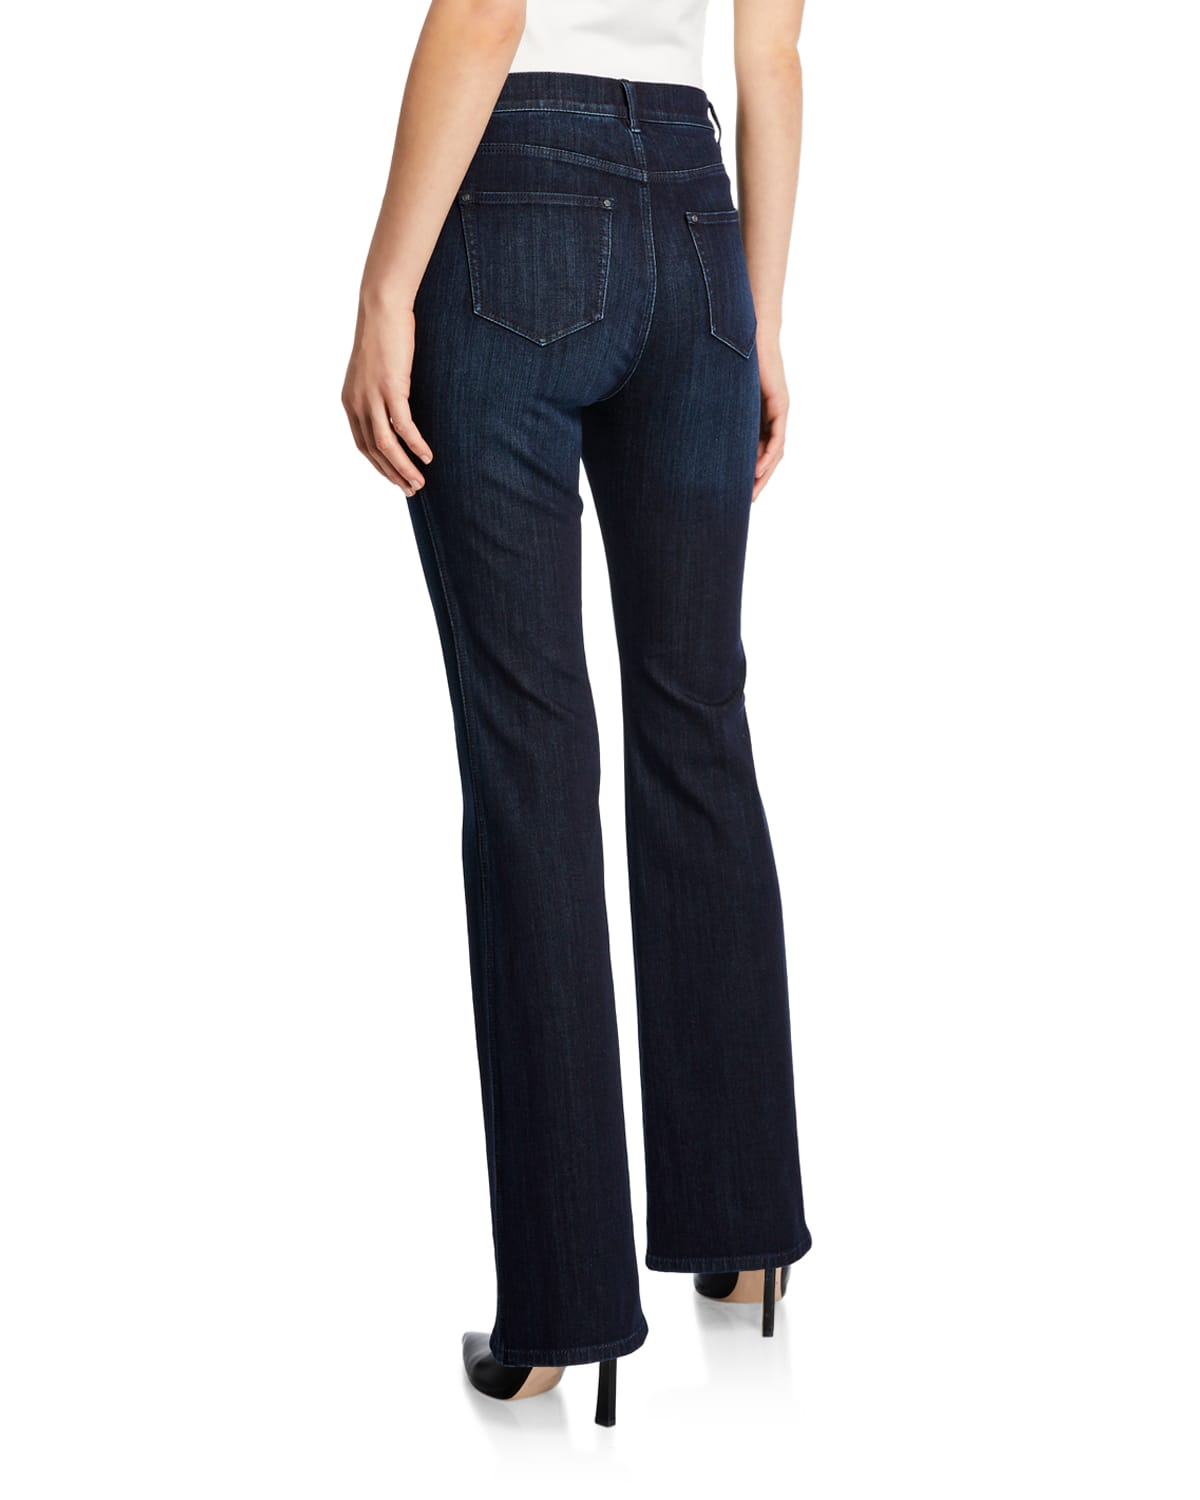 Mercer Flared Prestige Denim Jeans